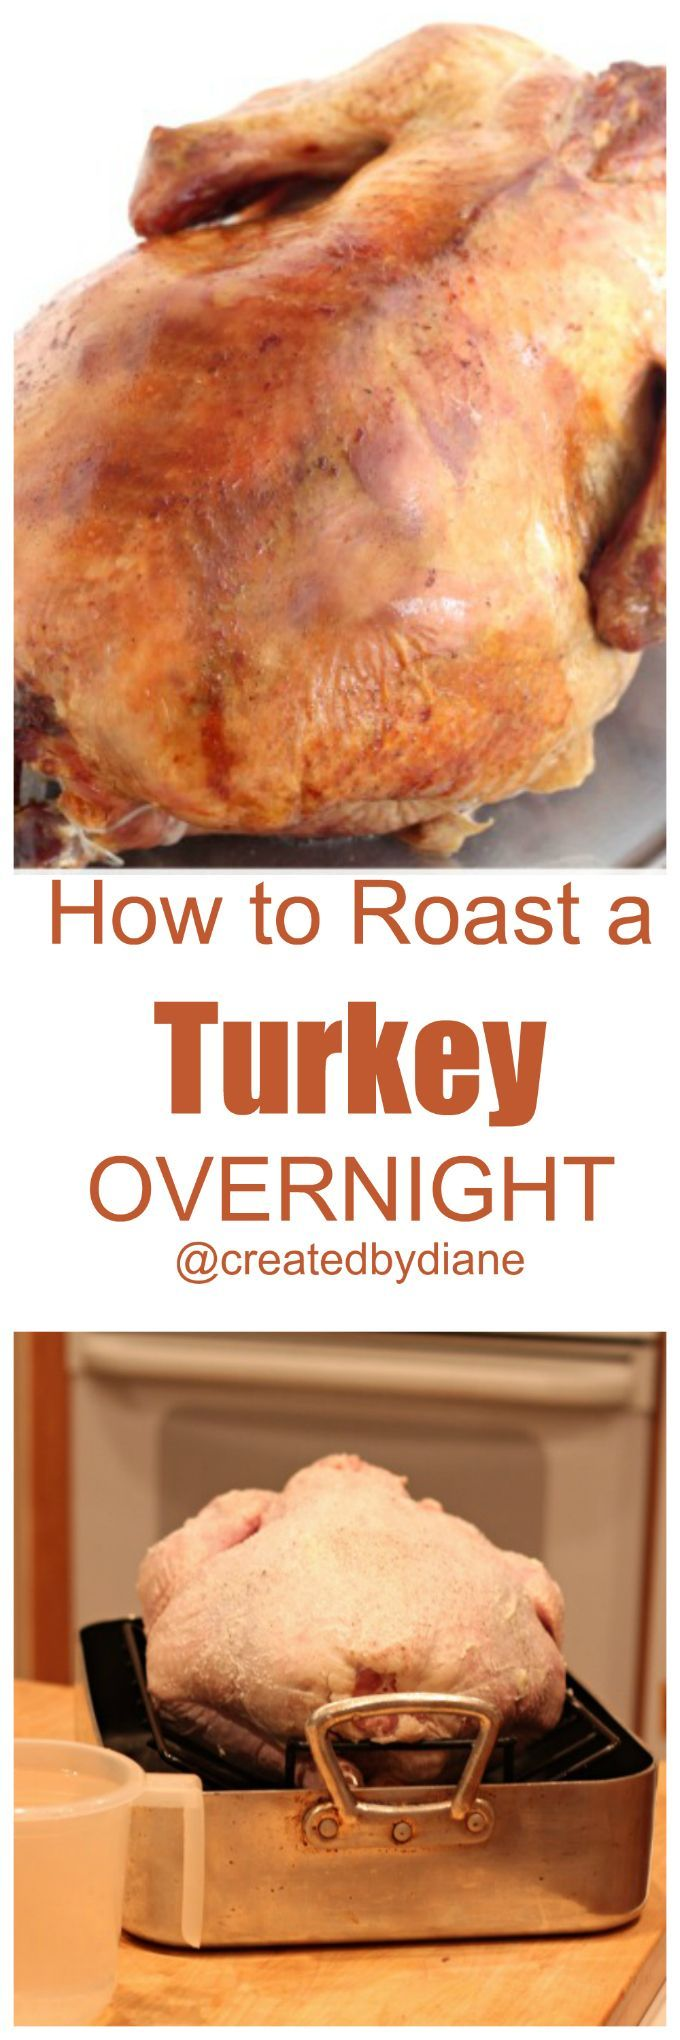 learn my tips and tricks to a PERFECT slow roasted turkey, success on the first try! roast-a-turkey-overnight-createdbydiane